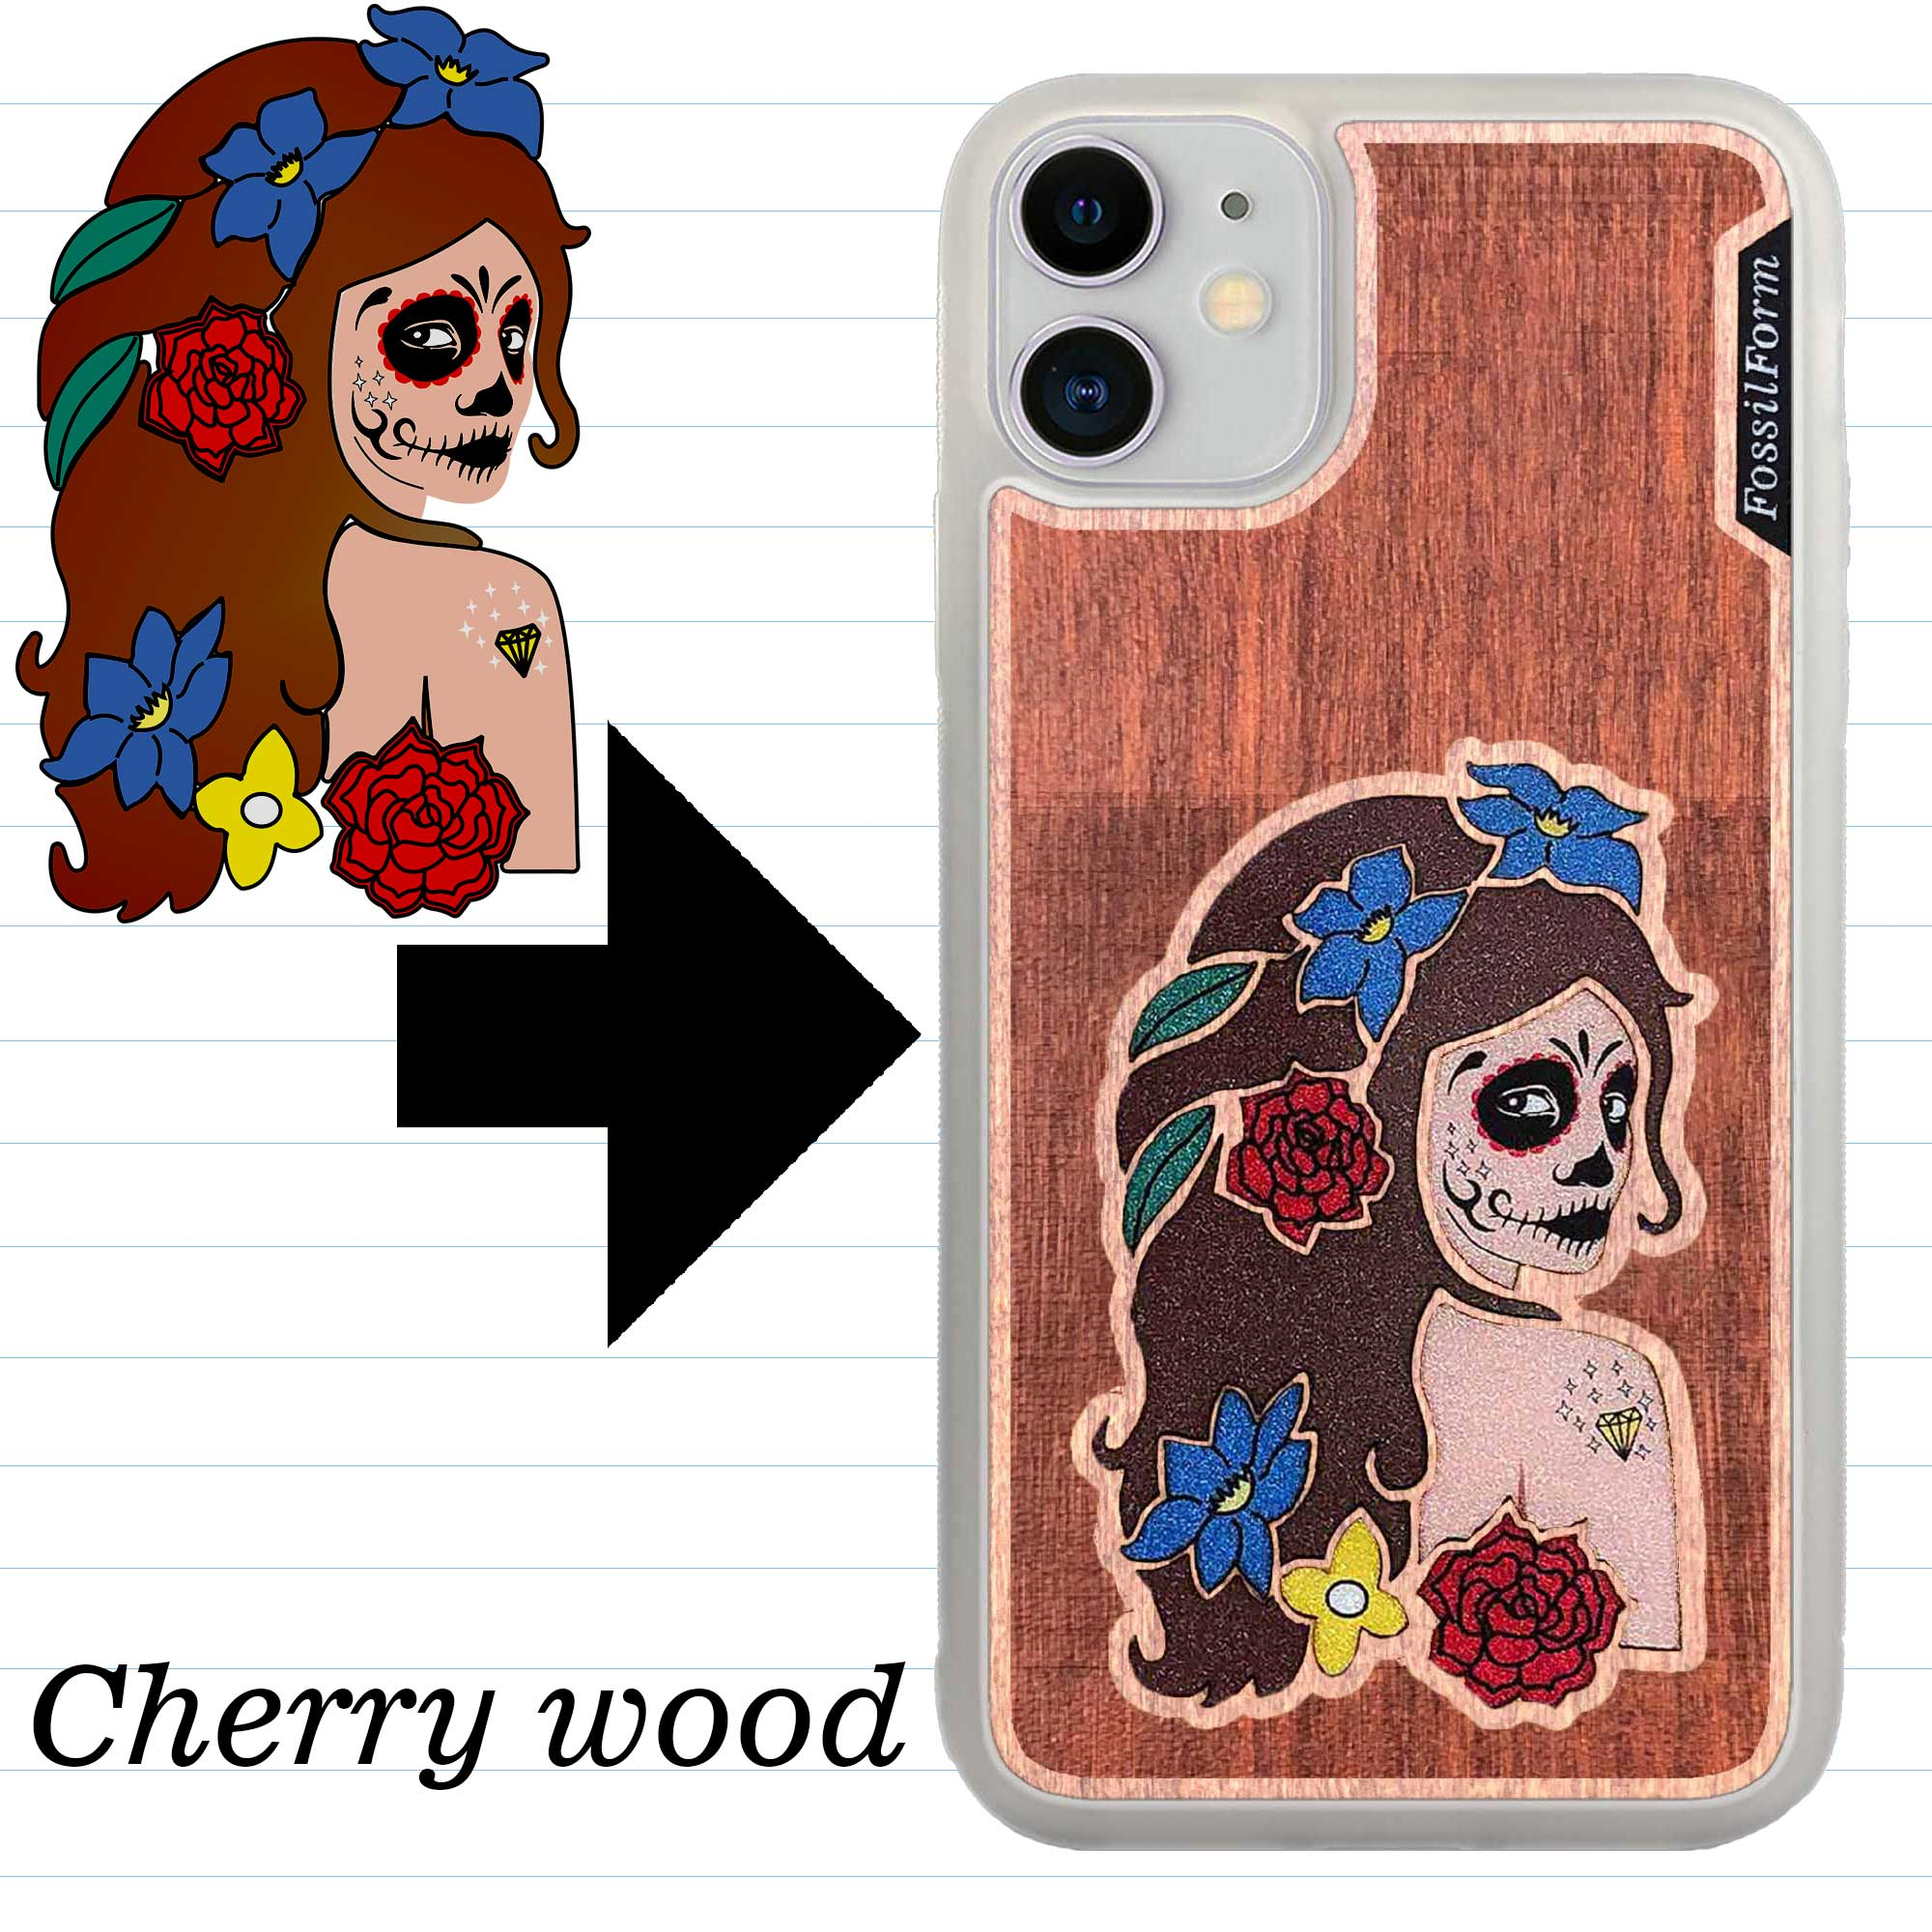 Custom-Made Engraved Wood + Resin + Glitter Phone Case - White